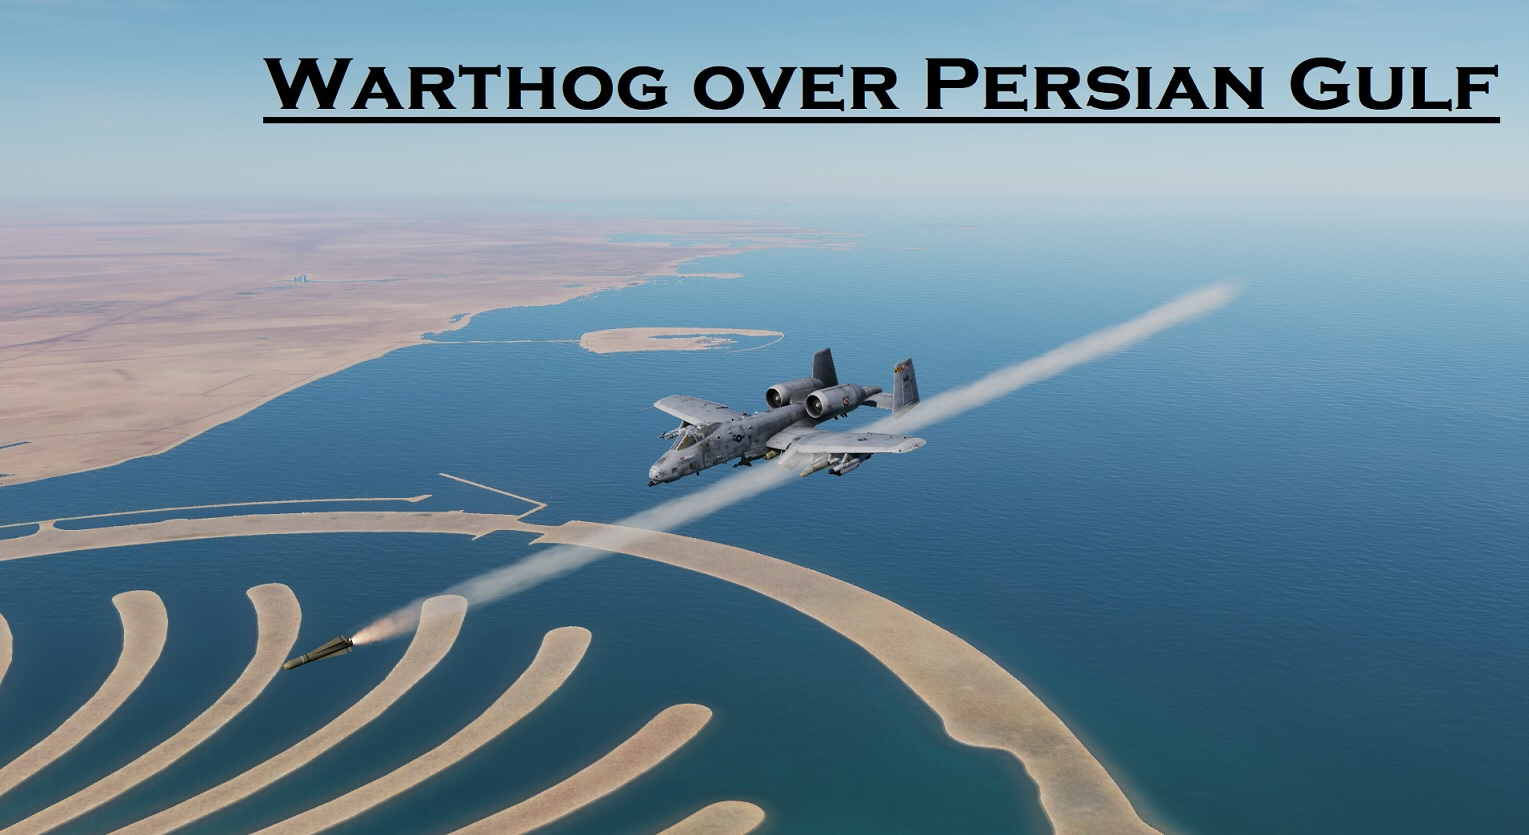 Warthog over Persian Gulf using Mbot Dynamic Campaign Engine